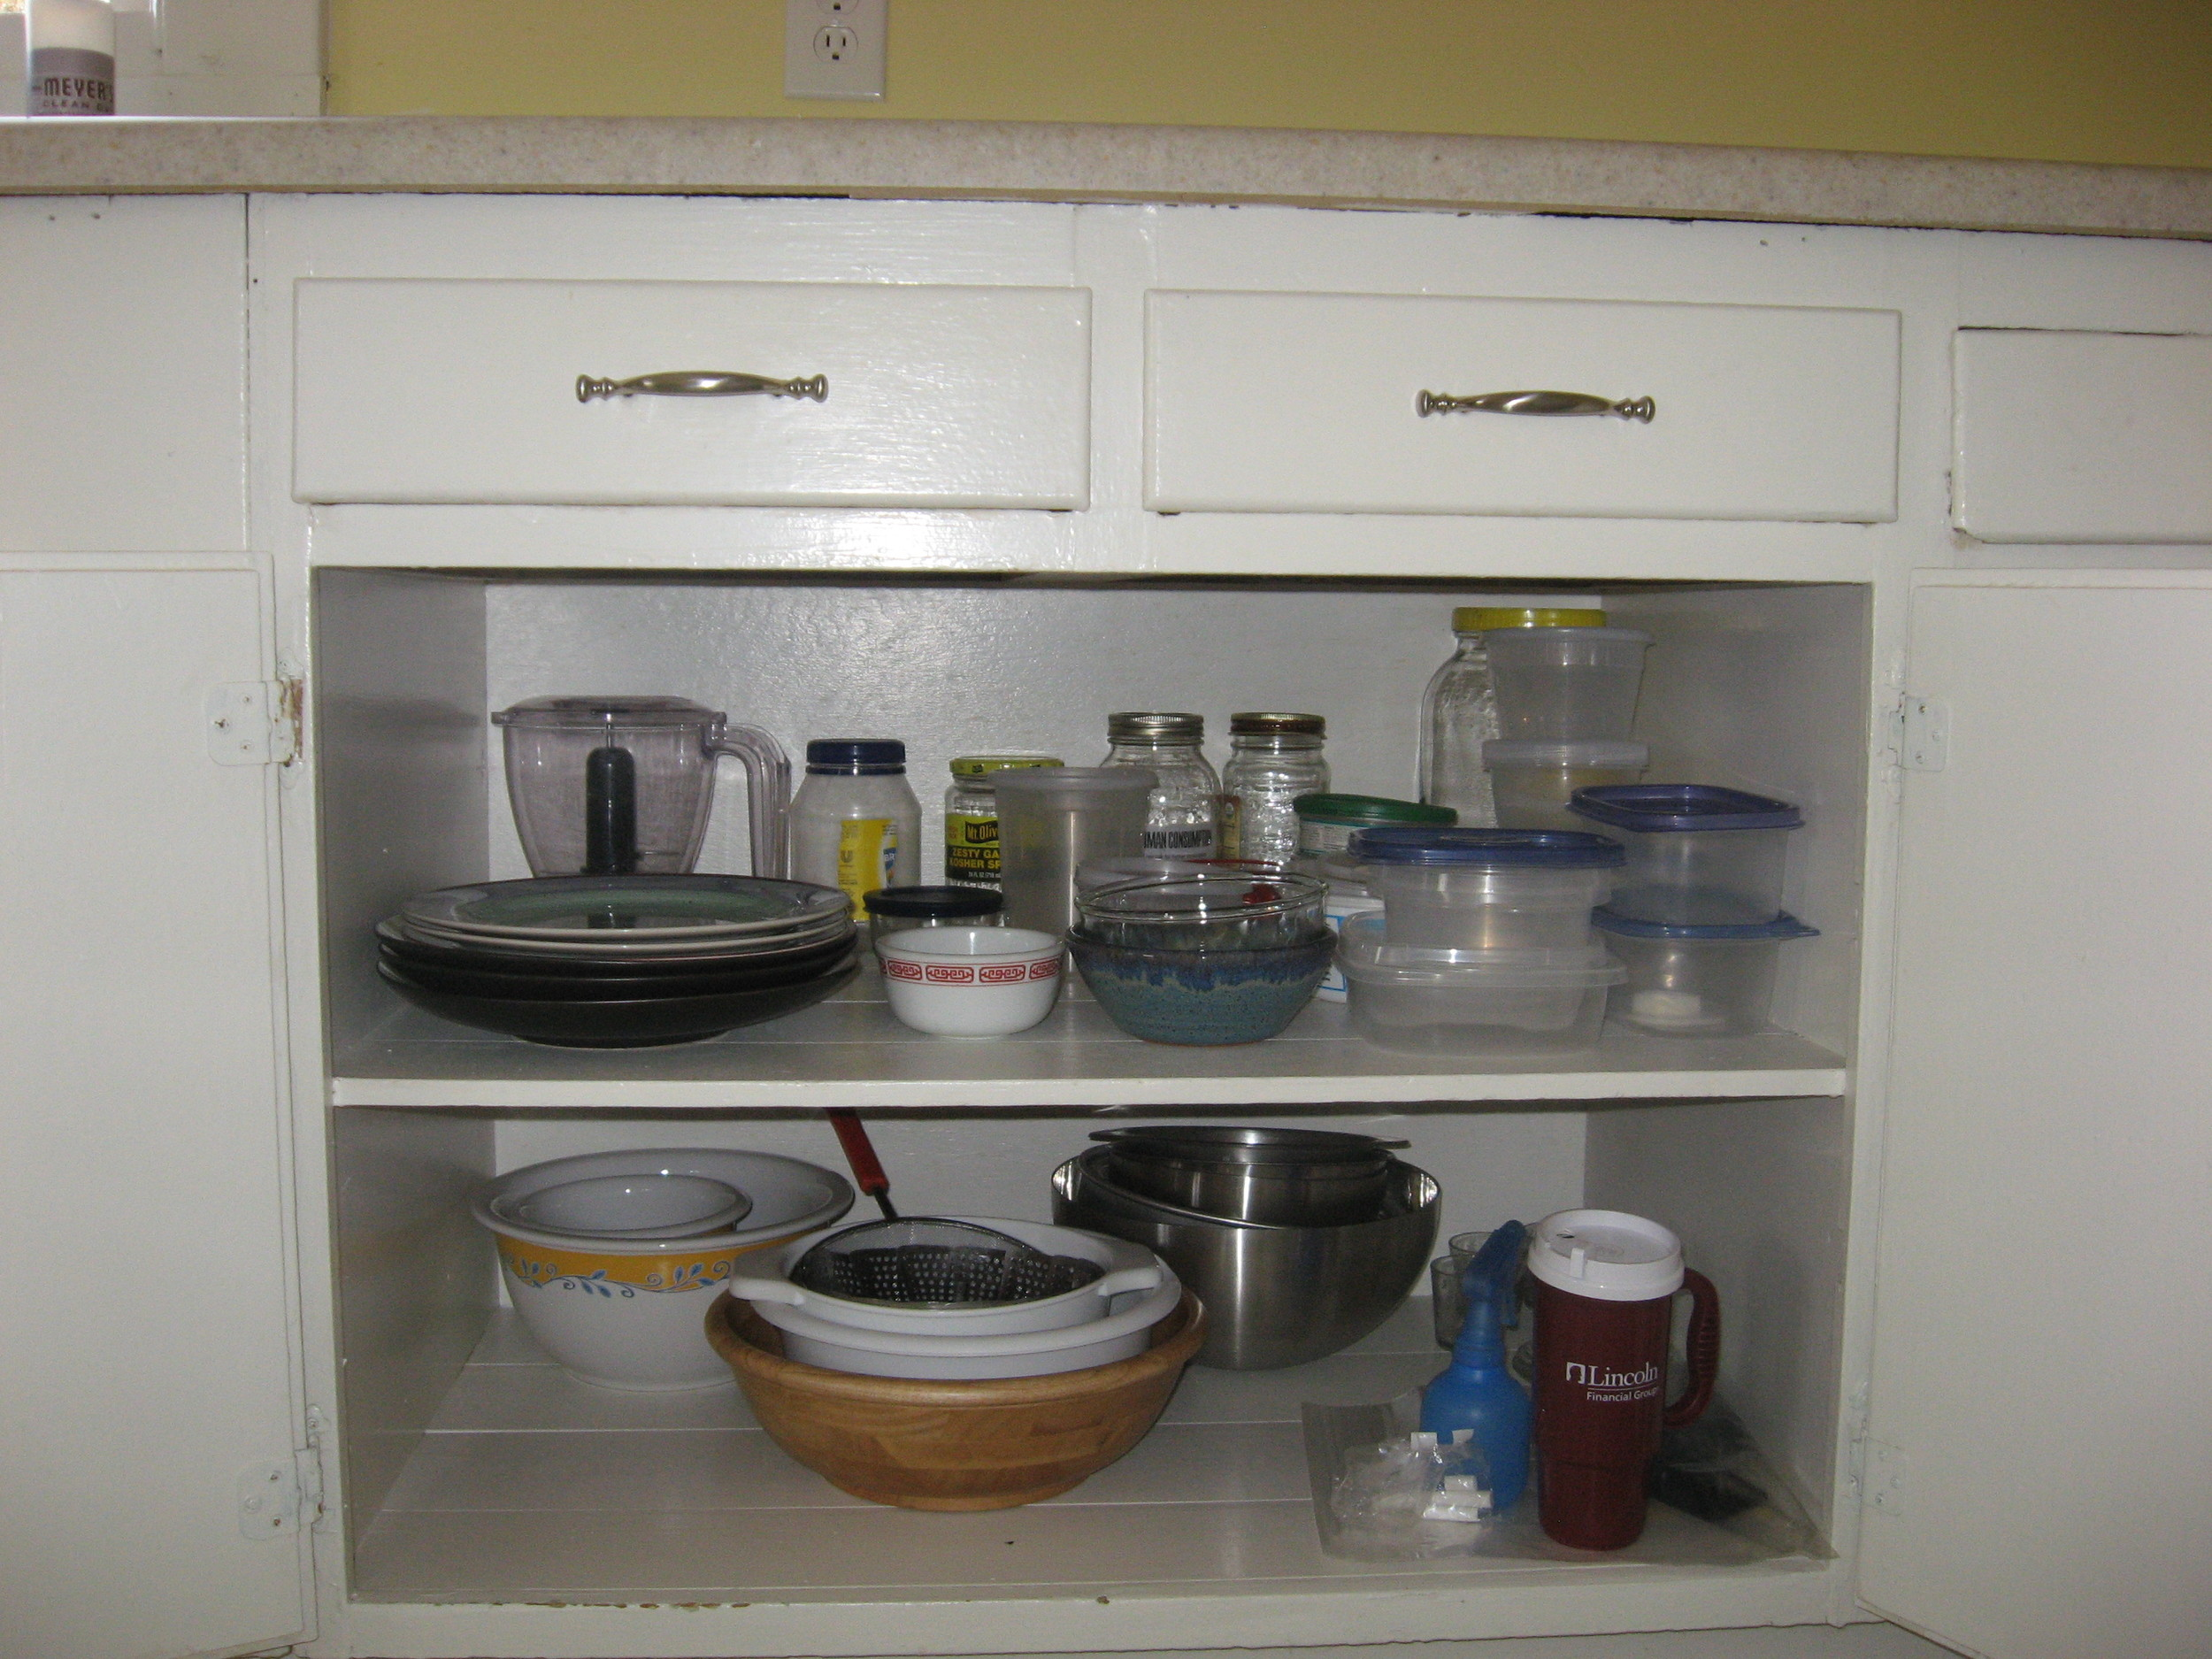 Extra plates, bowls and containers.  It's amazing that a bit of organization can create so much more space.